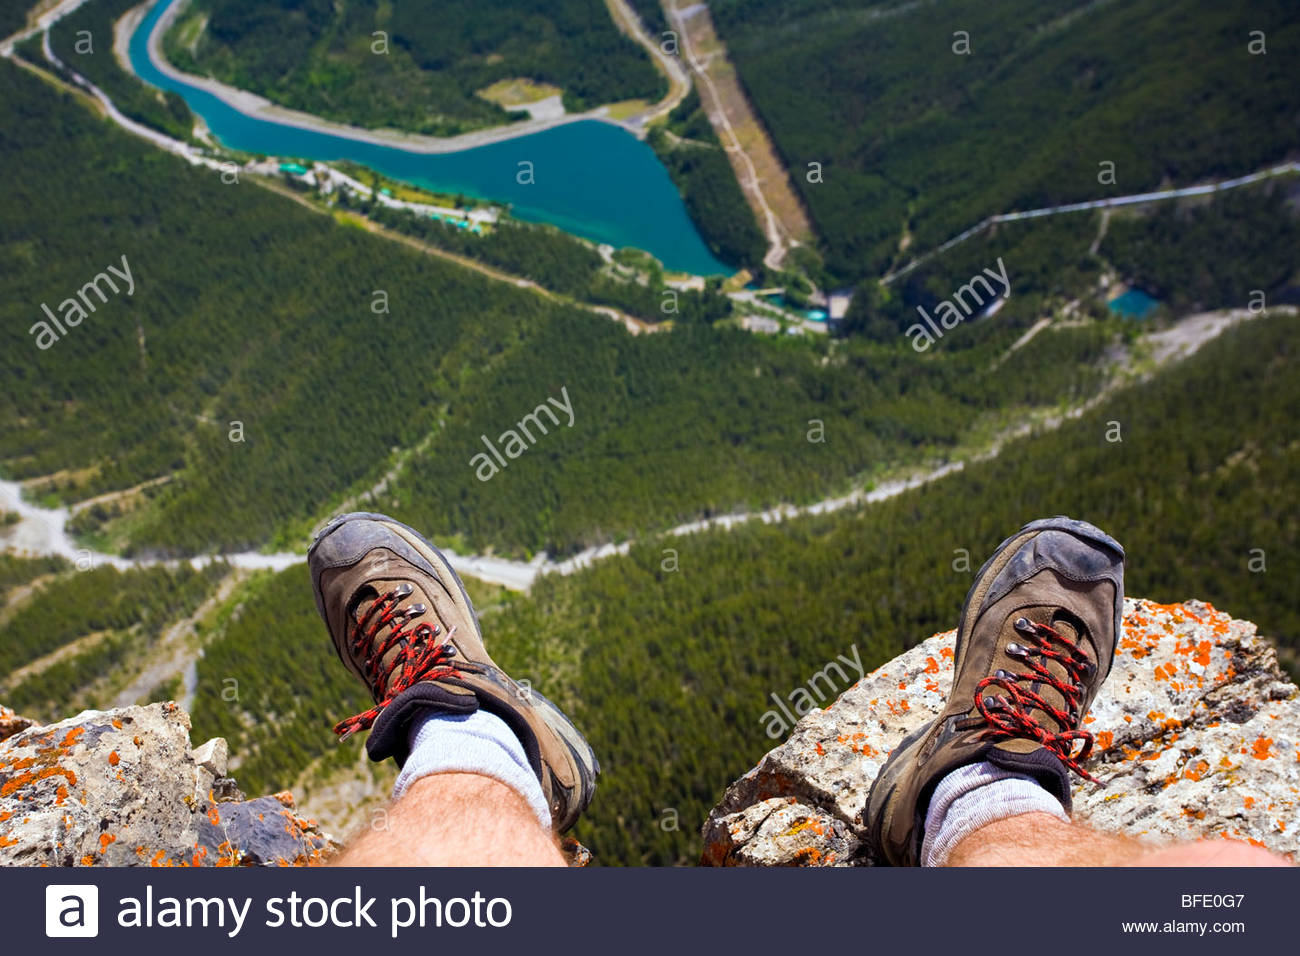 Hiker's feet at edge of cliff, Mount Rundle near Canmore, Alberta, Canada - Stock Image